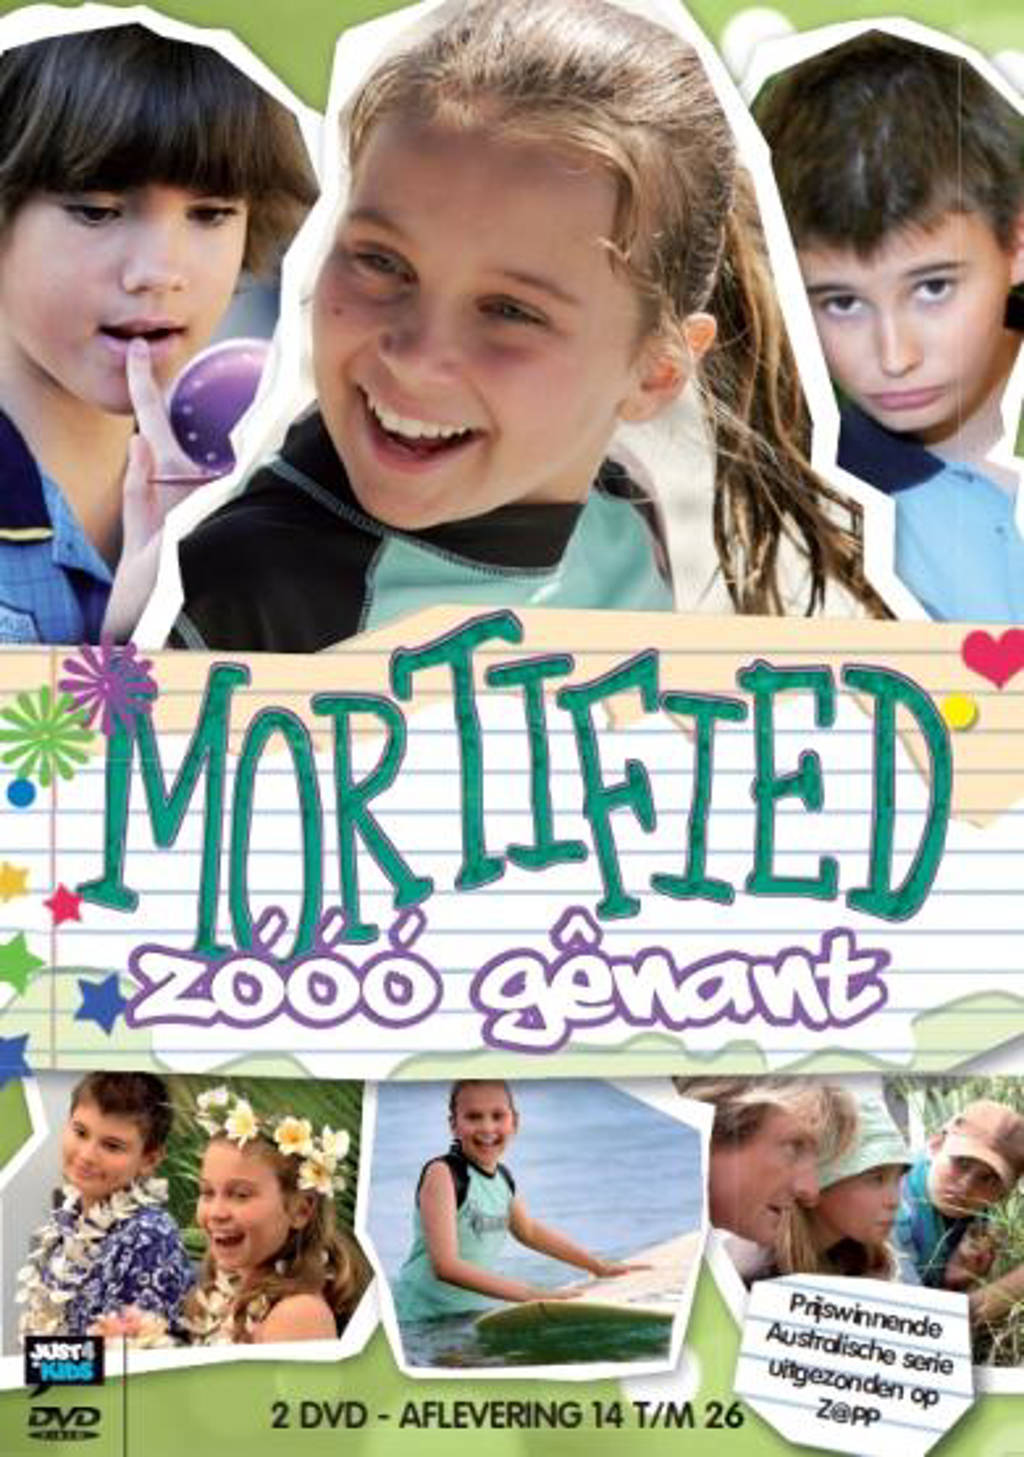 Mortified - Zooo genant 2 (DVD)